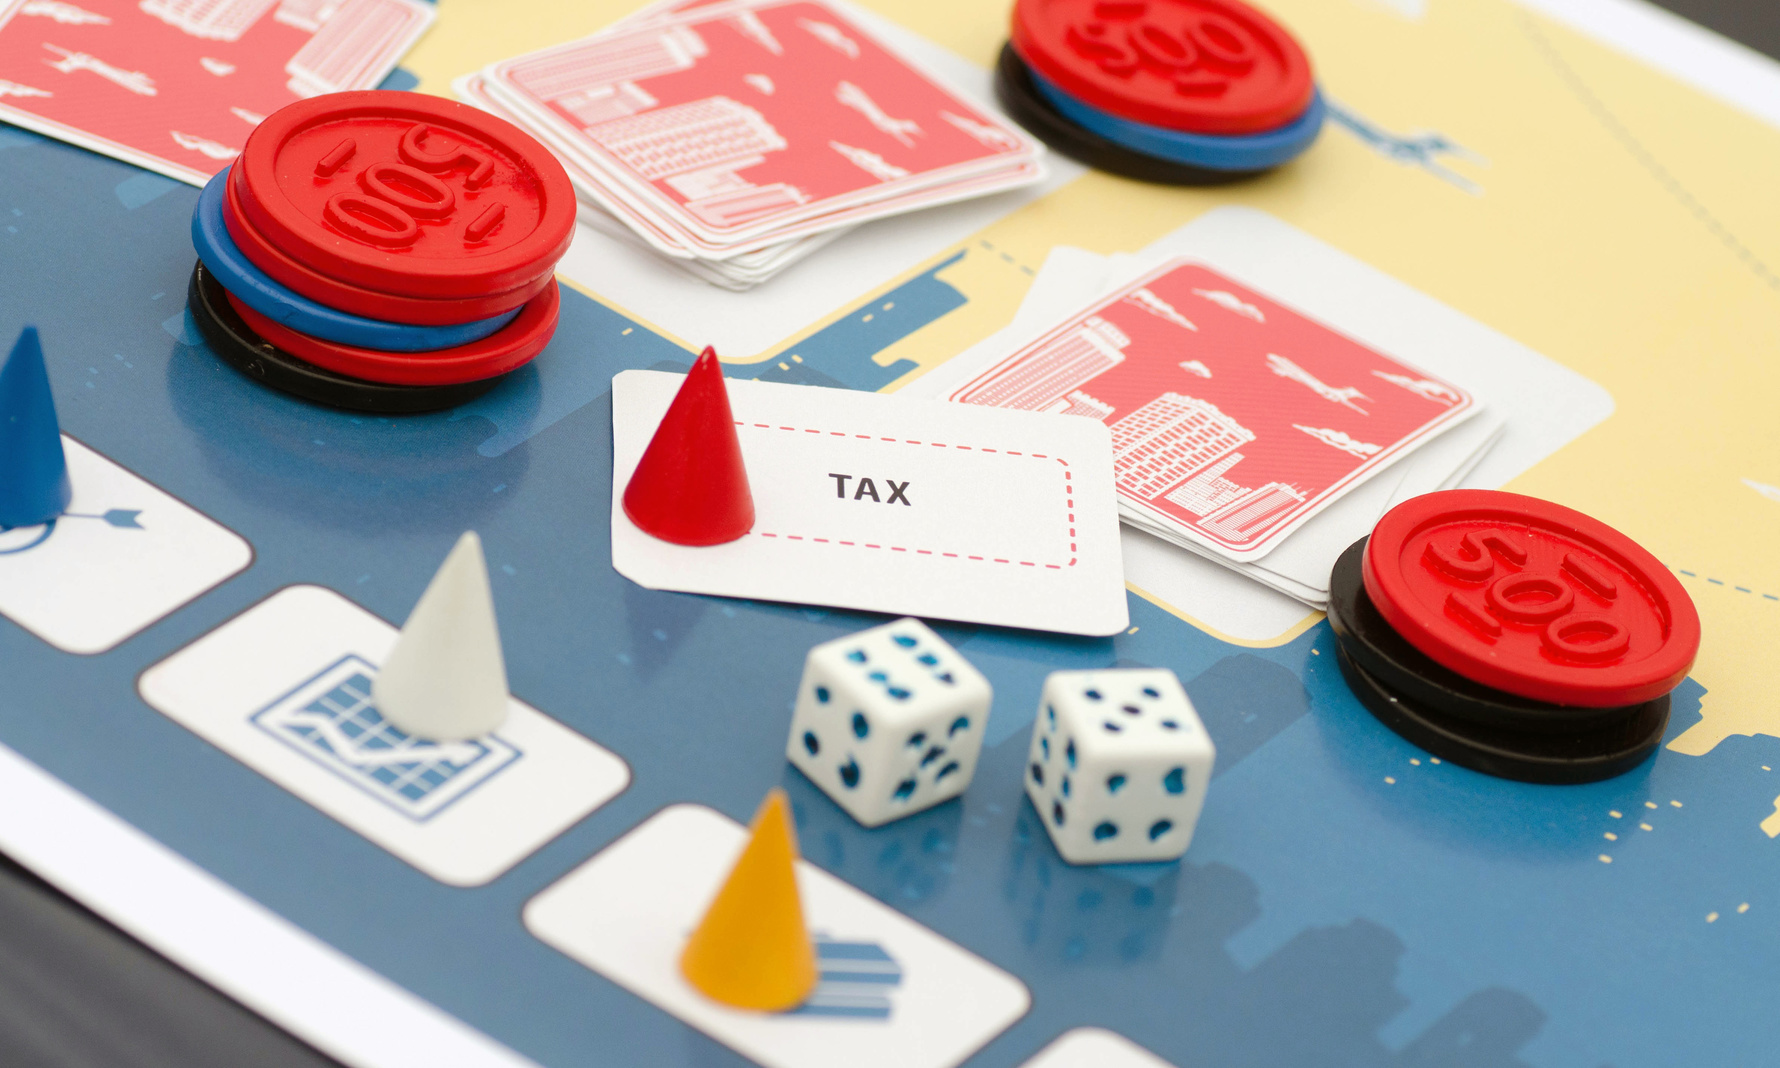 Board game prototype with cones, chips, dice, and card that says tax